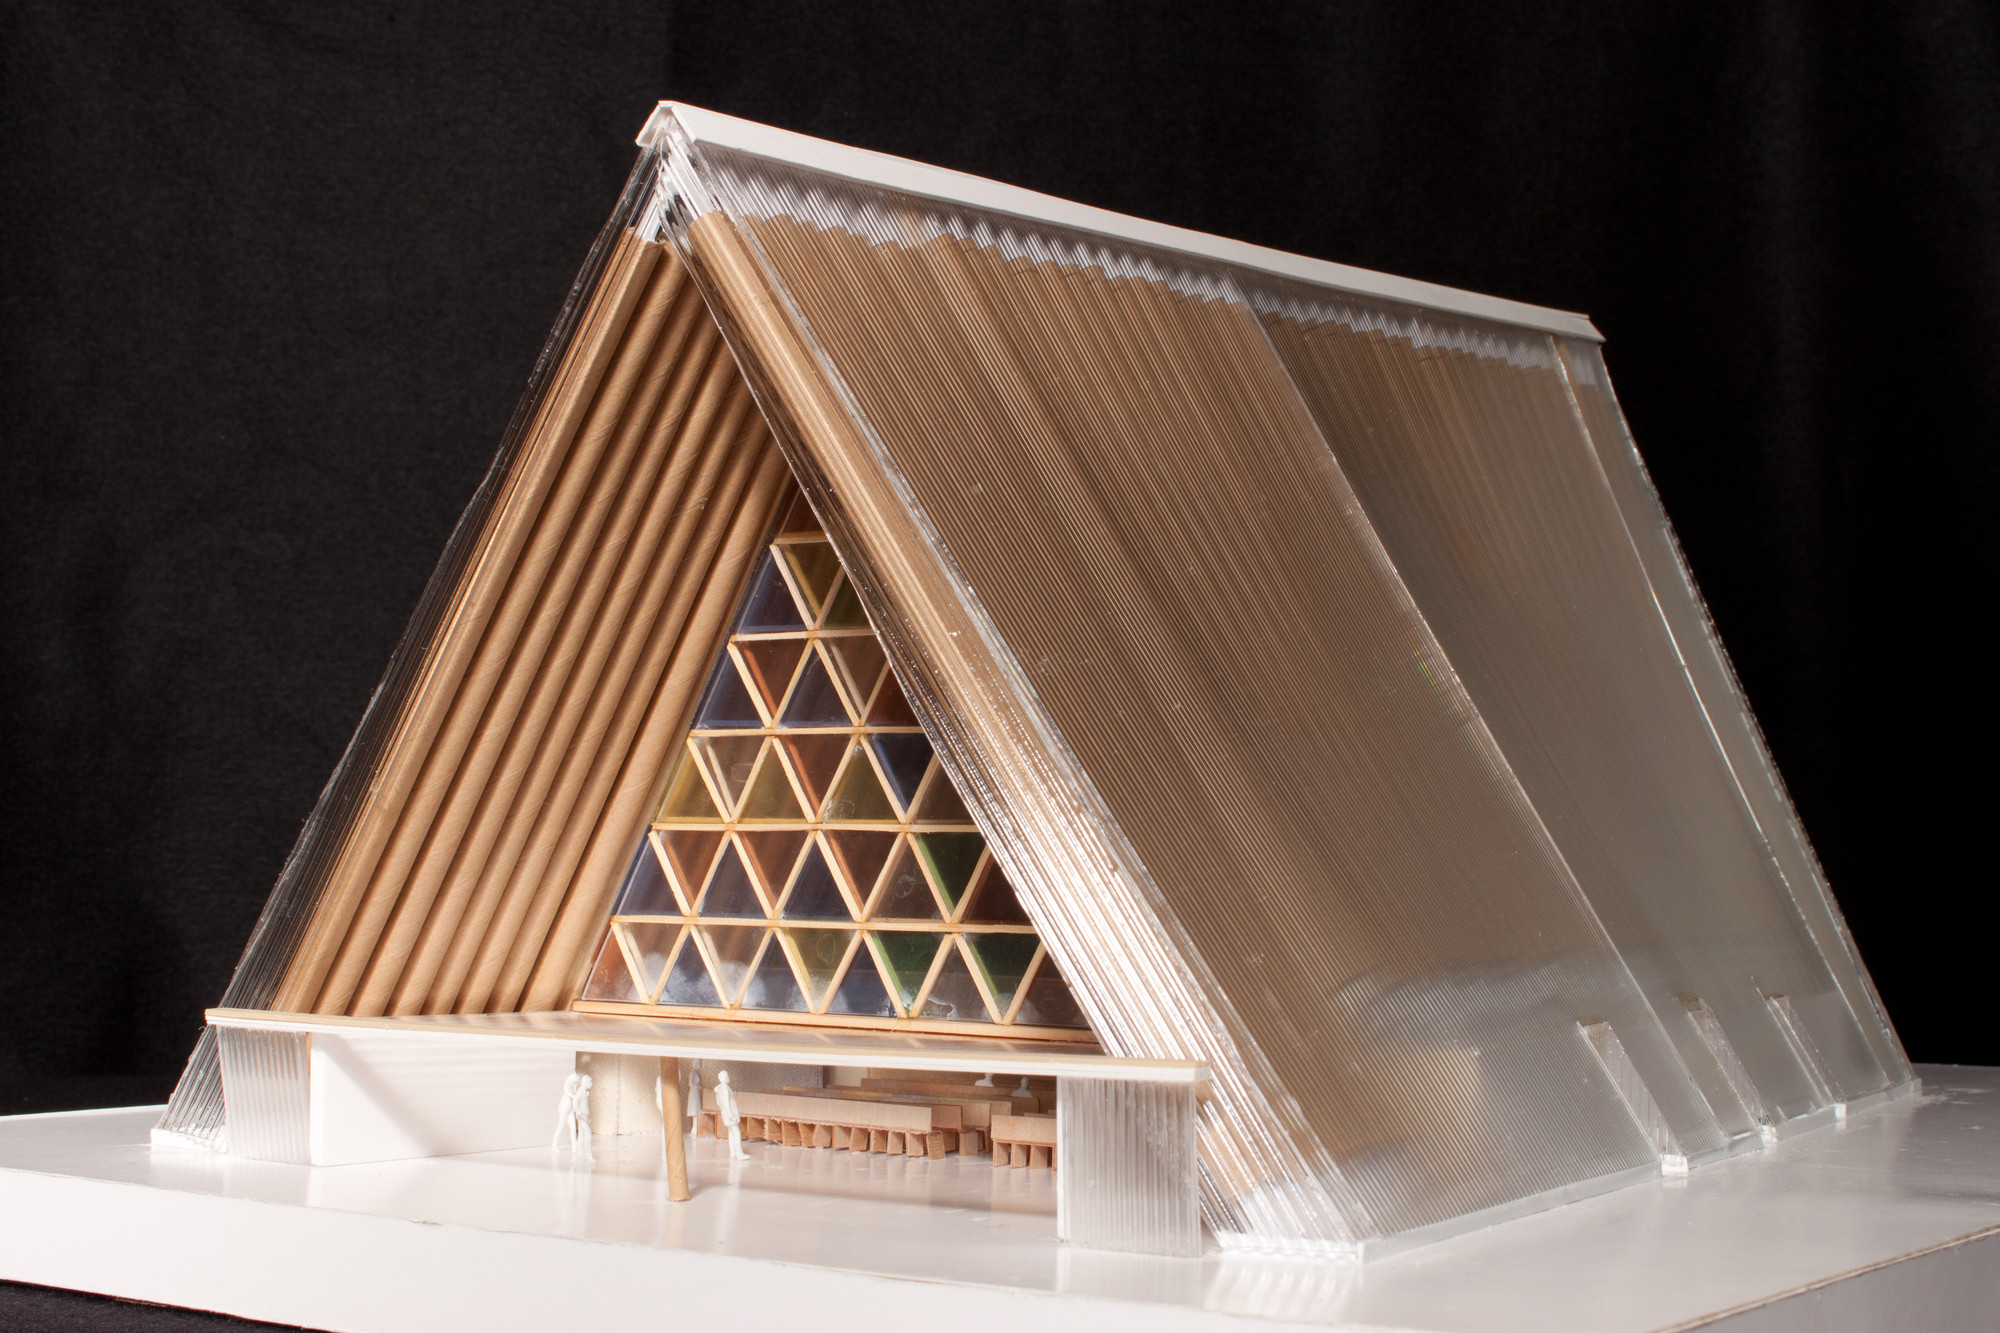 shigeru ban 39 s cardboard cathedral underway in new zealand archdaily. Black Bedroom Furniture Sets. Home Design Ideas